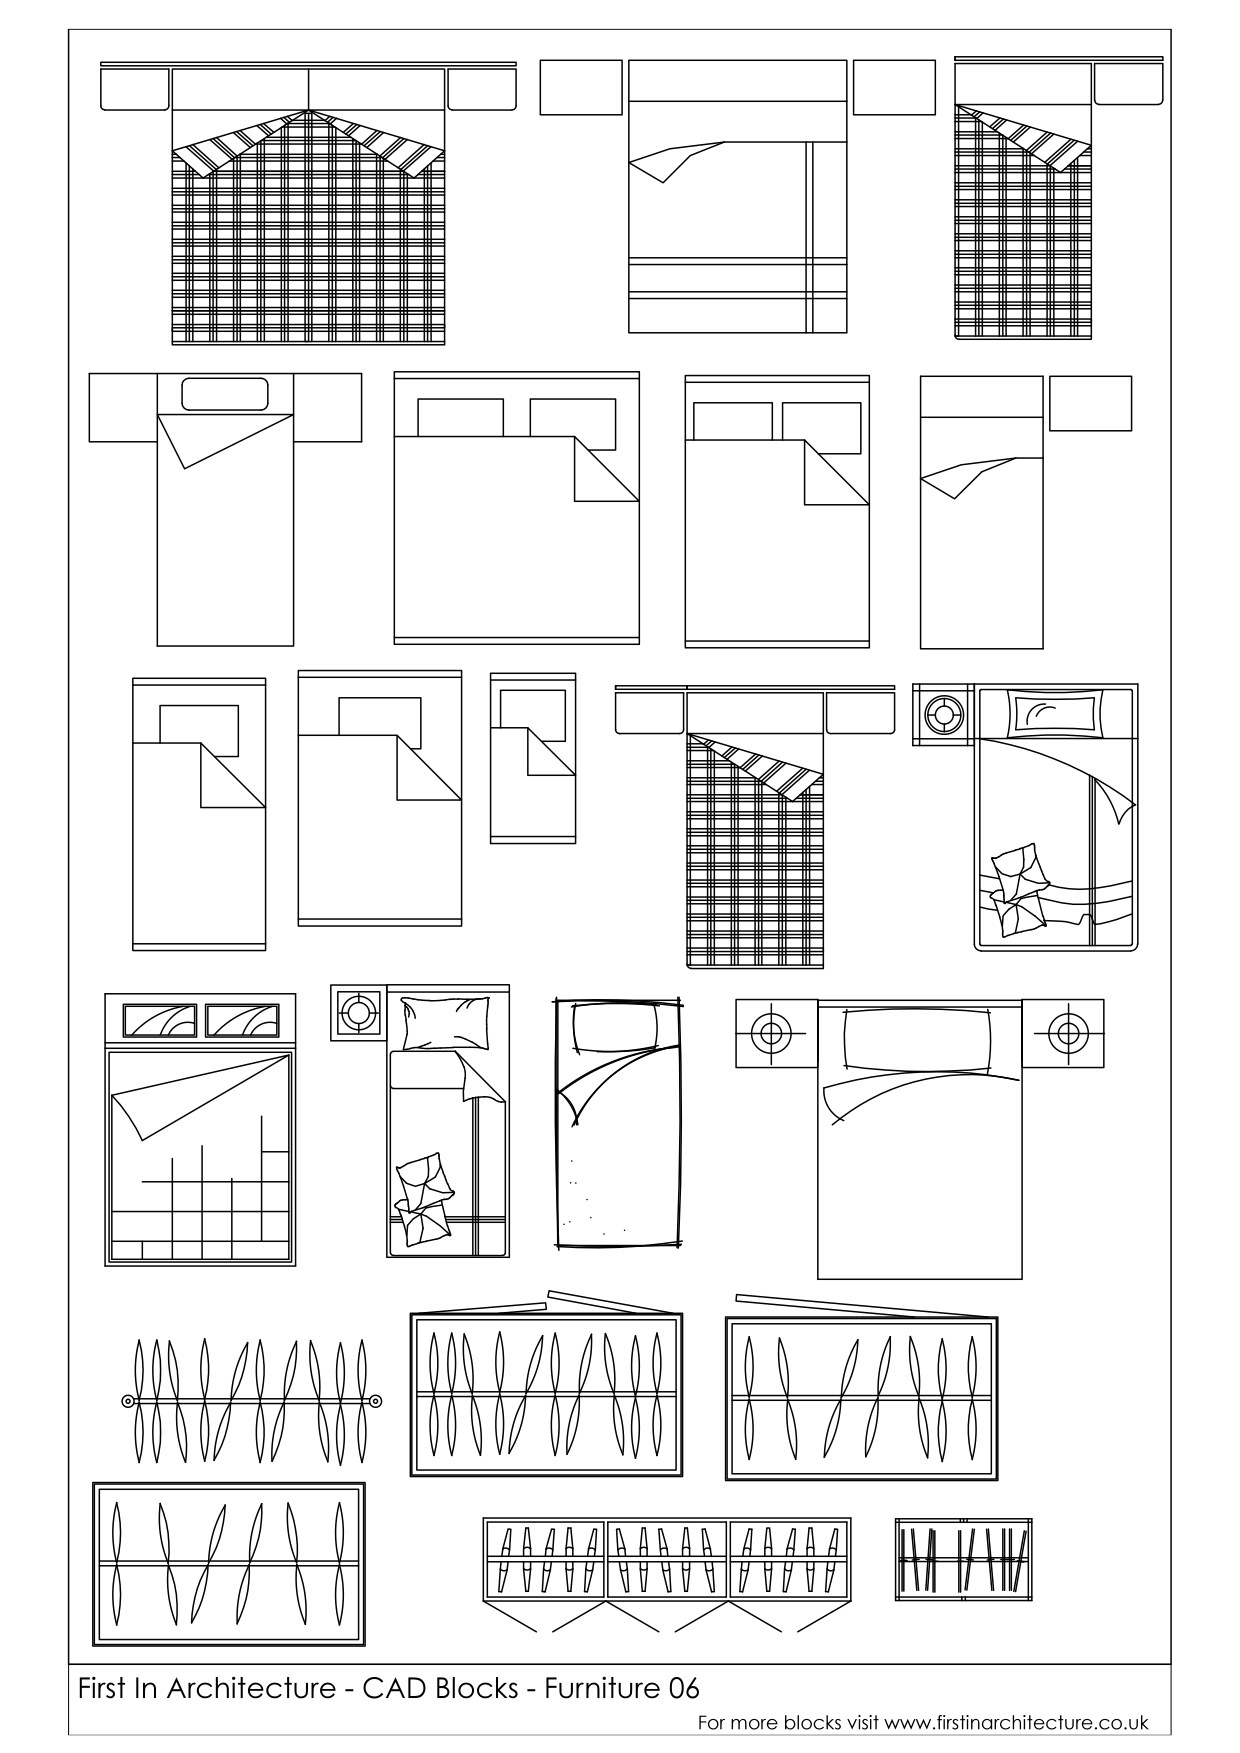 How To Draw The Front Elevation Of A Building : Free cad blocks beds and wardrobes